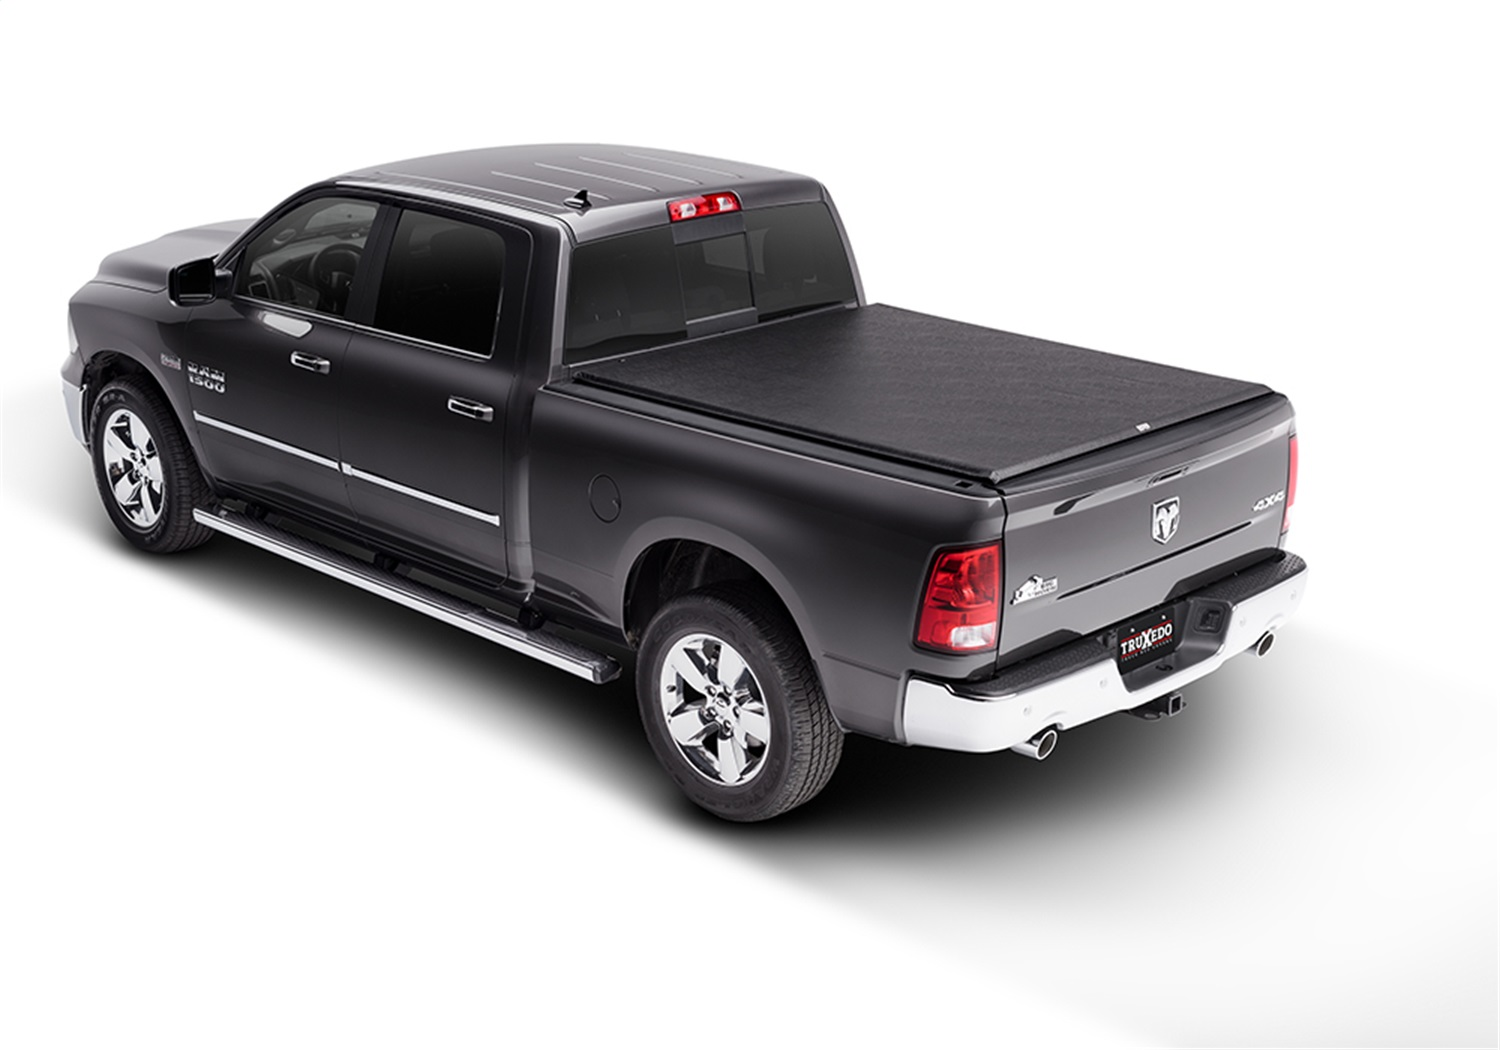 Truxedo 845701 The Edge Tonneau Cover Fits 07-20 Tundra